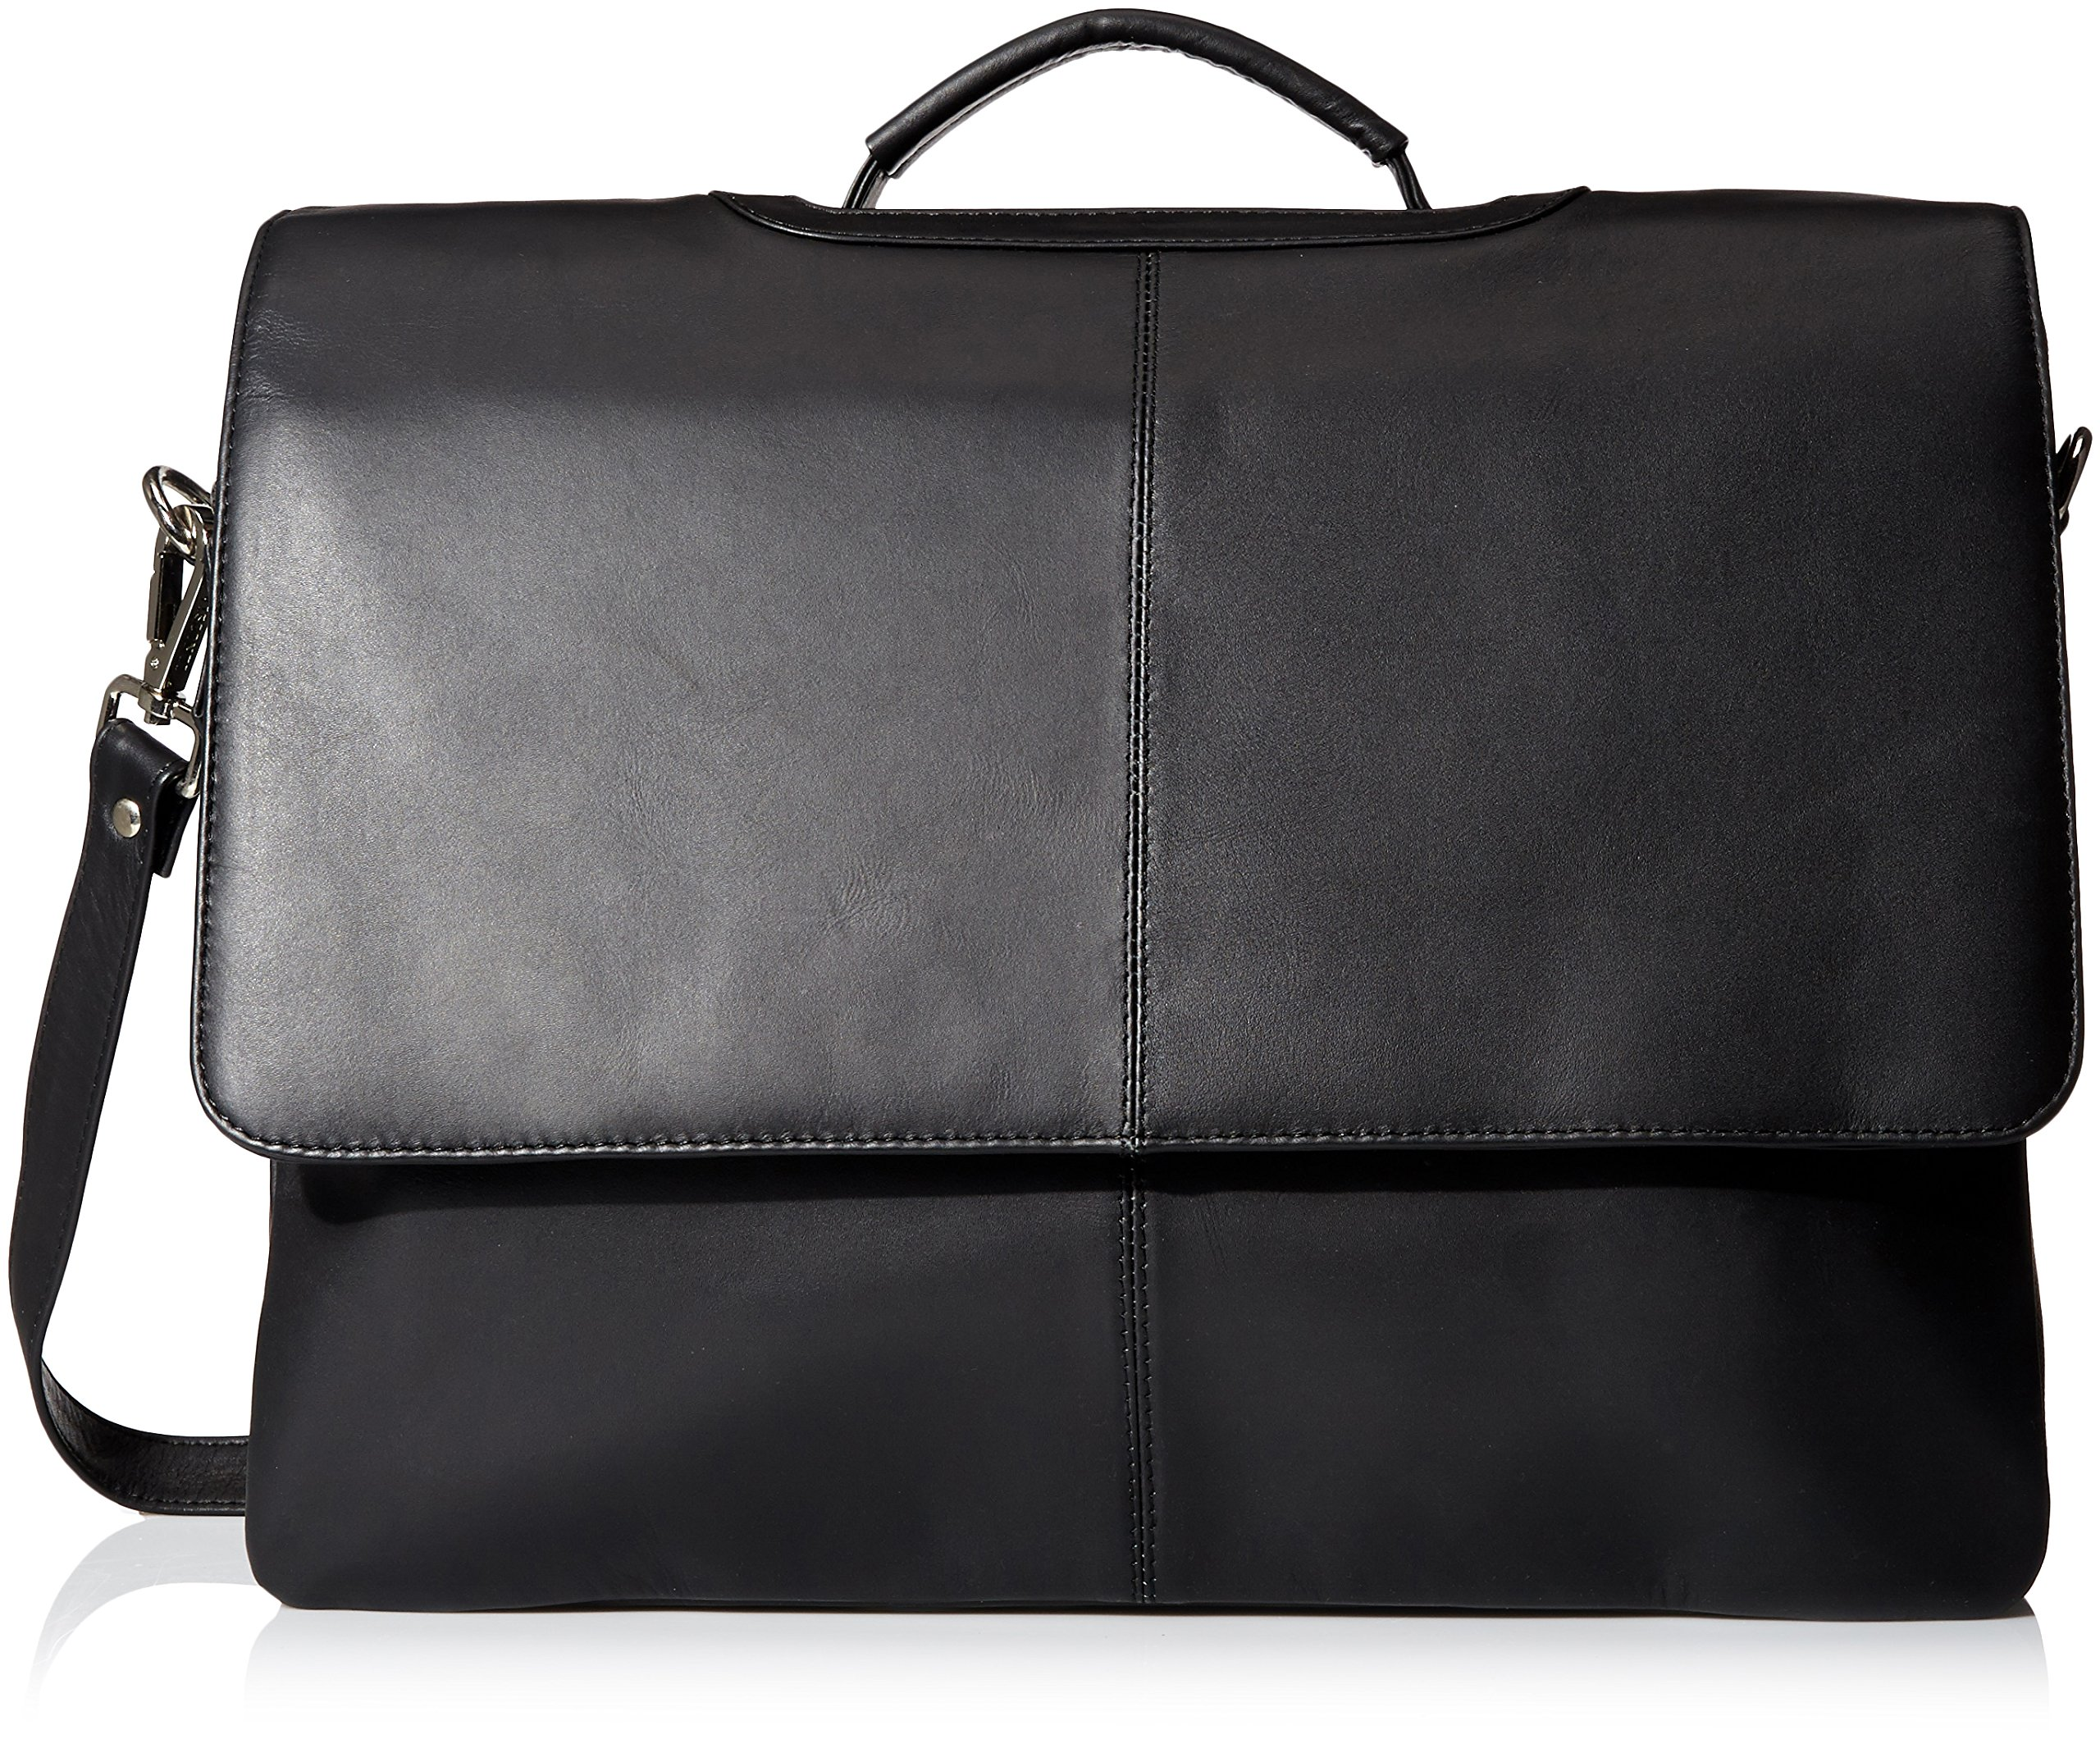 Visconti Visconti Leather Business Case Bag, Briefcase, Handbag Large, Black, One Size